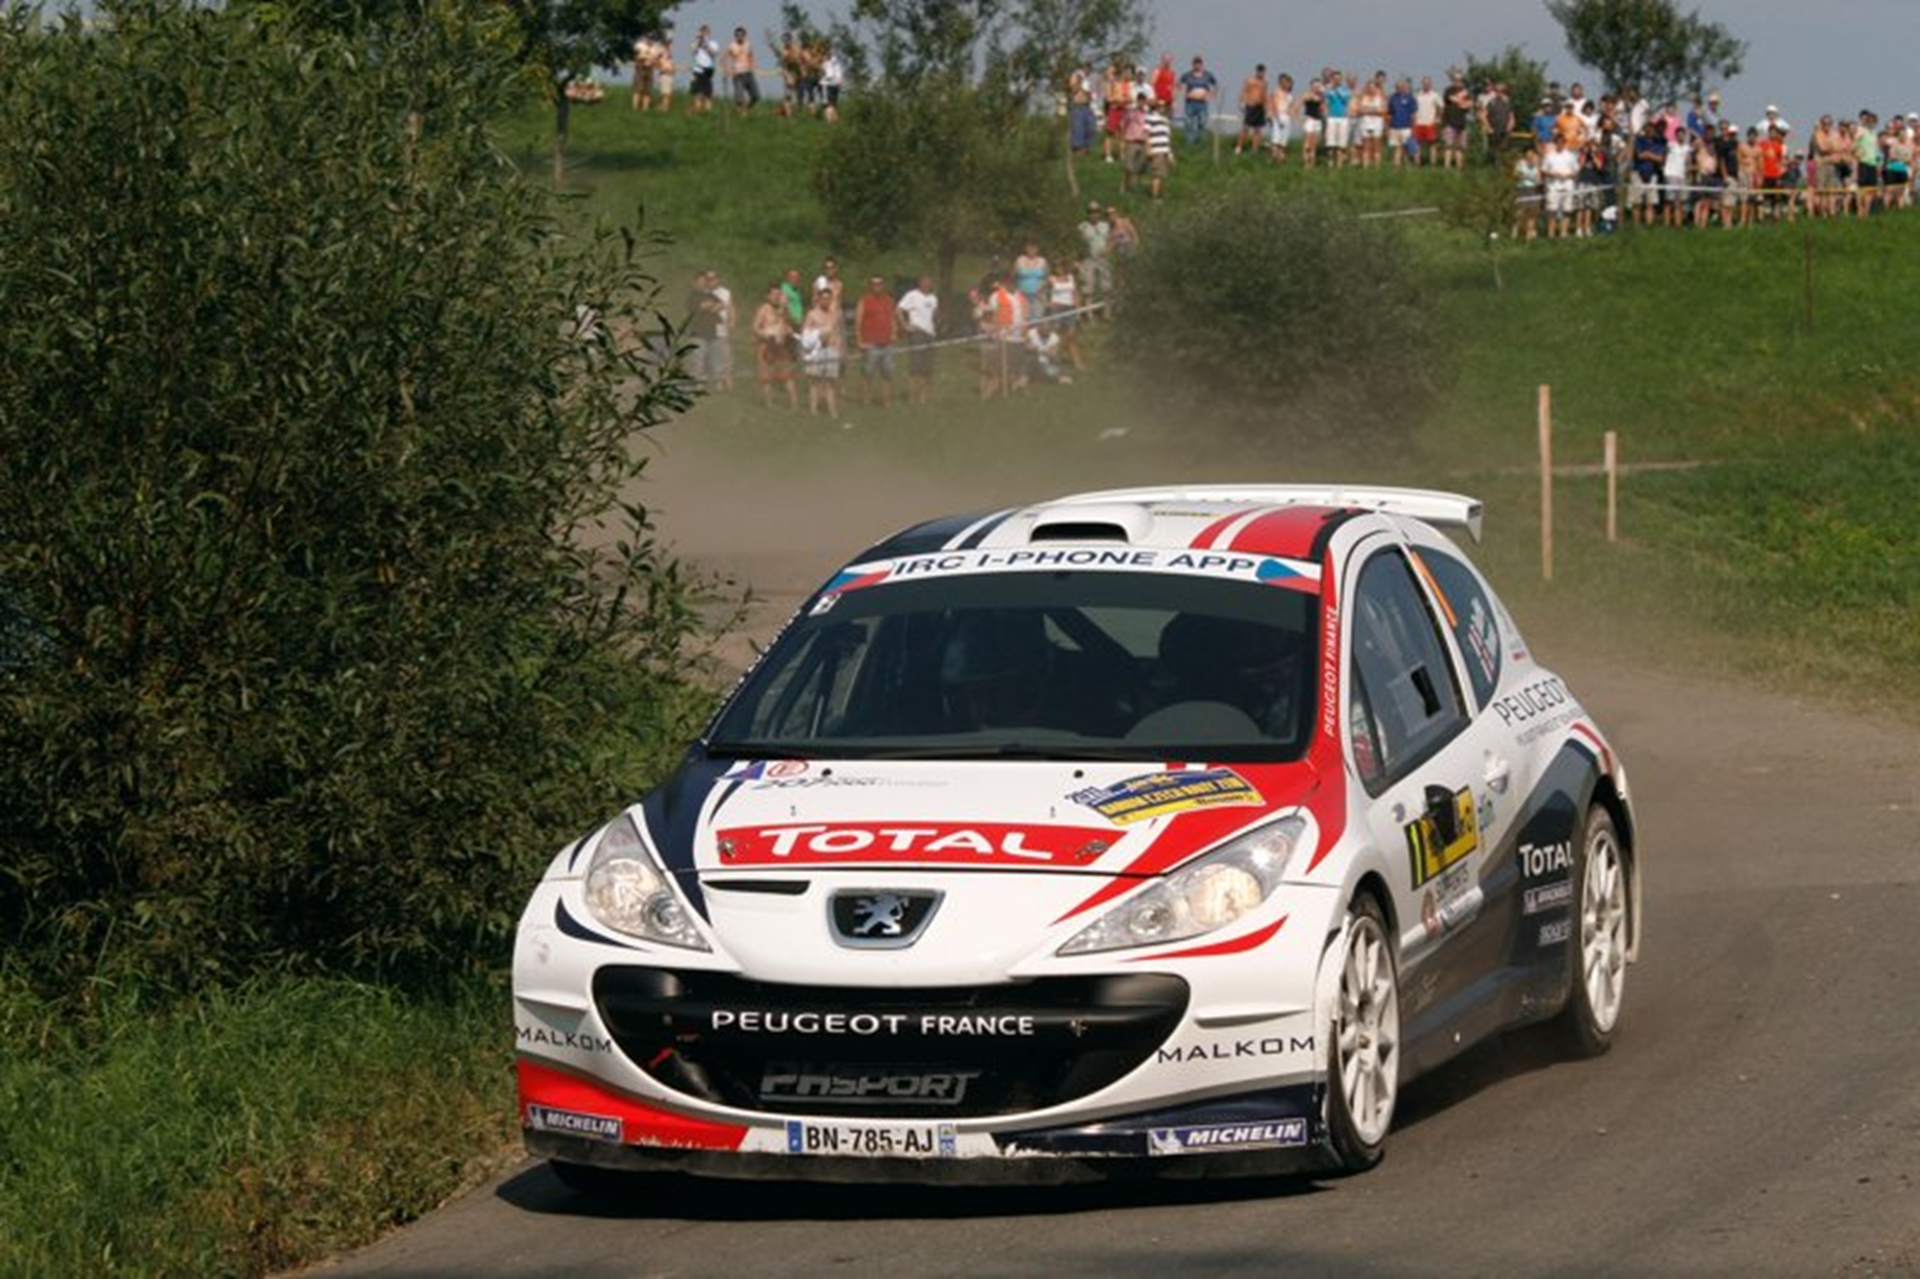 Peugeot Rally 2011 Car